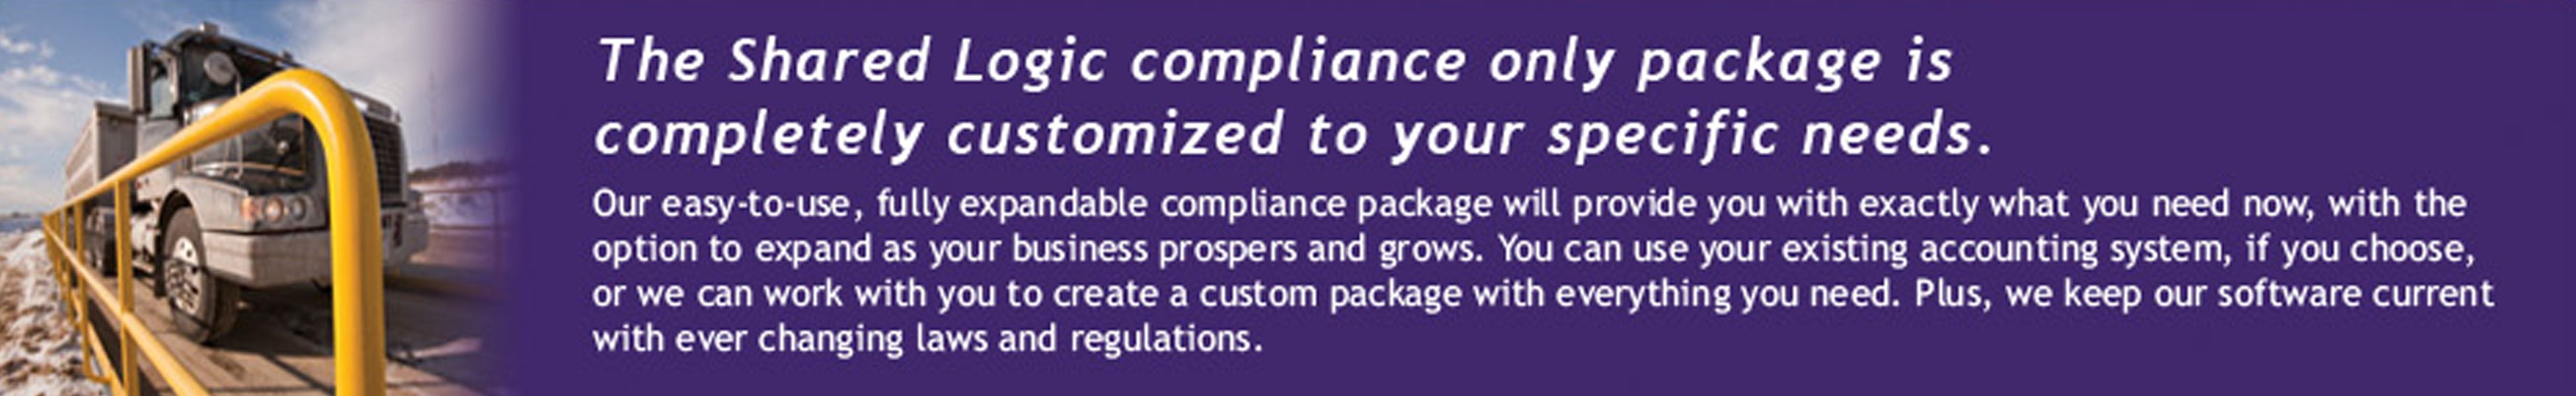 The Shared Logic compliance only package is completely customized to your specific needs.